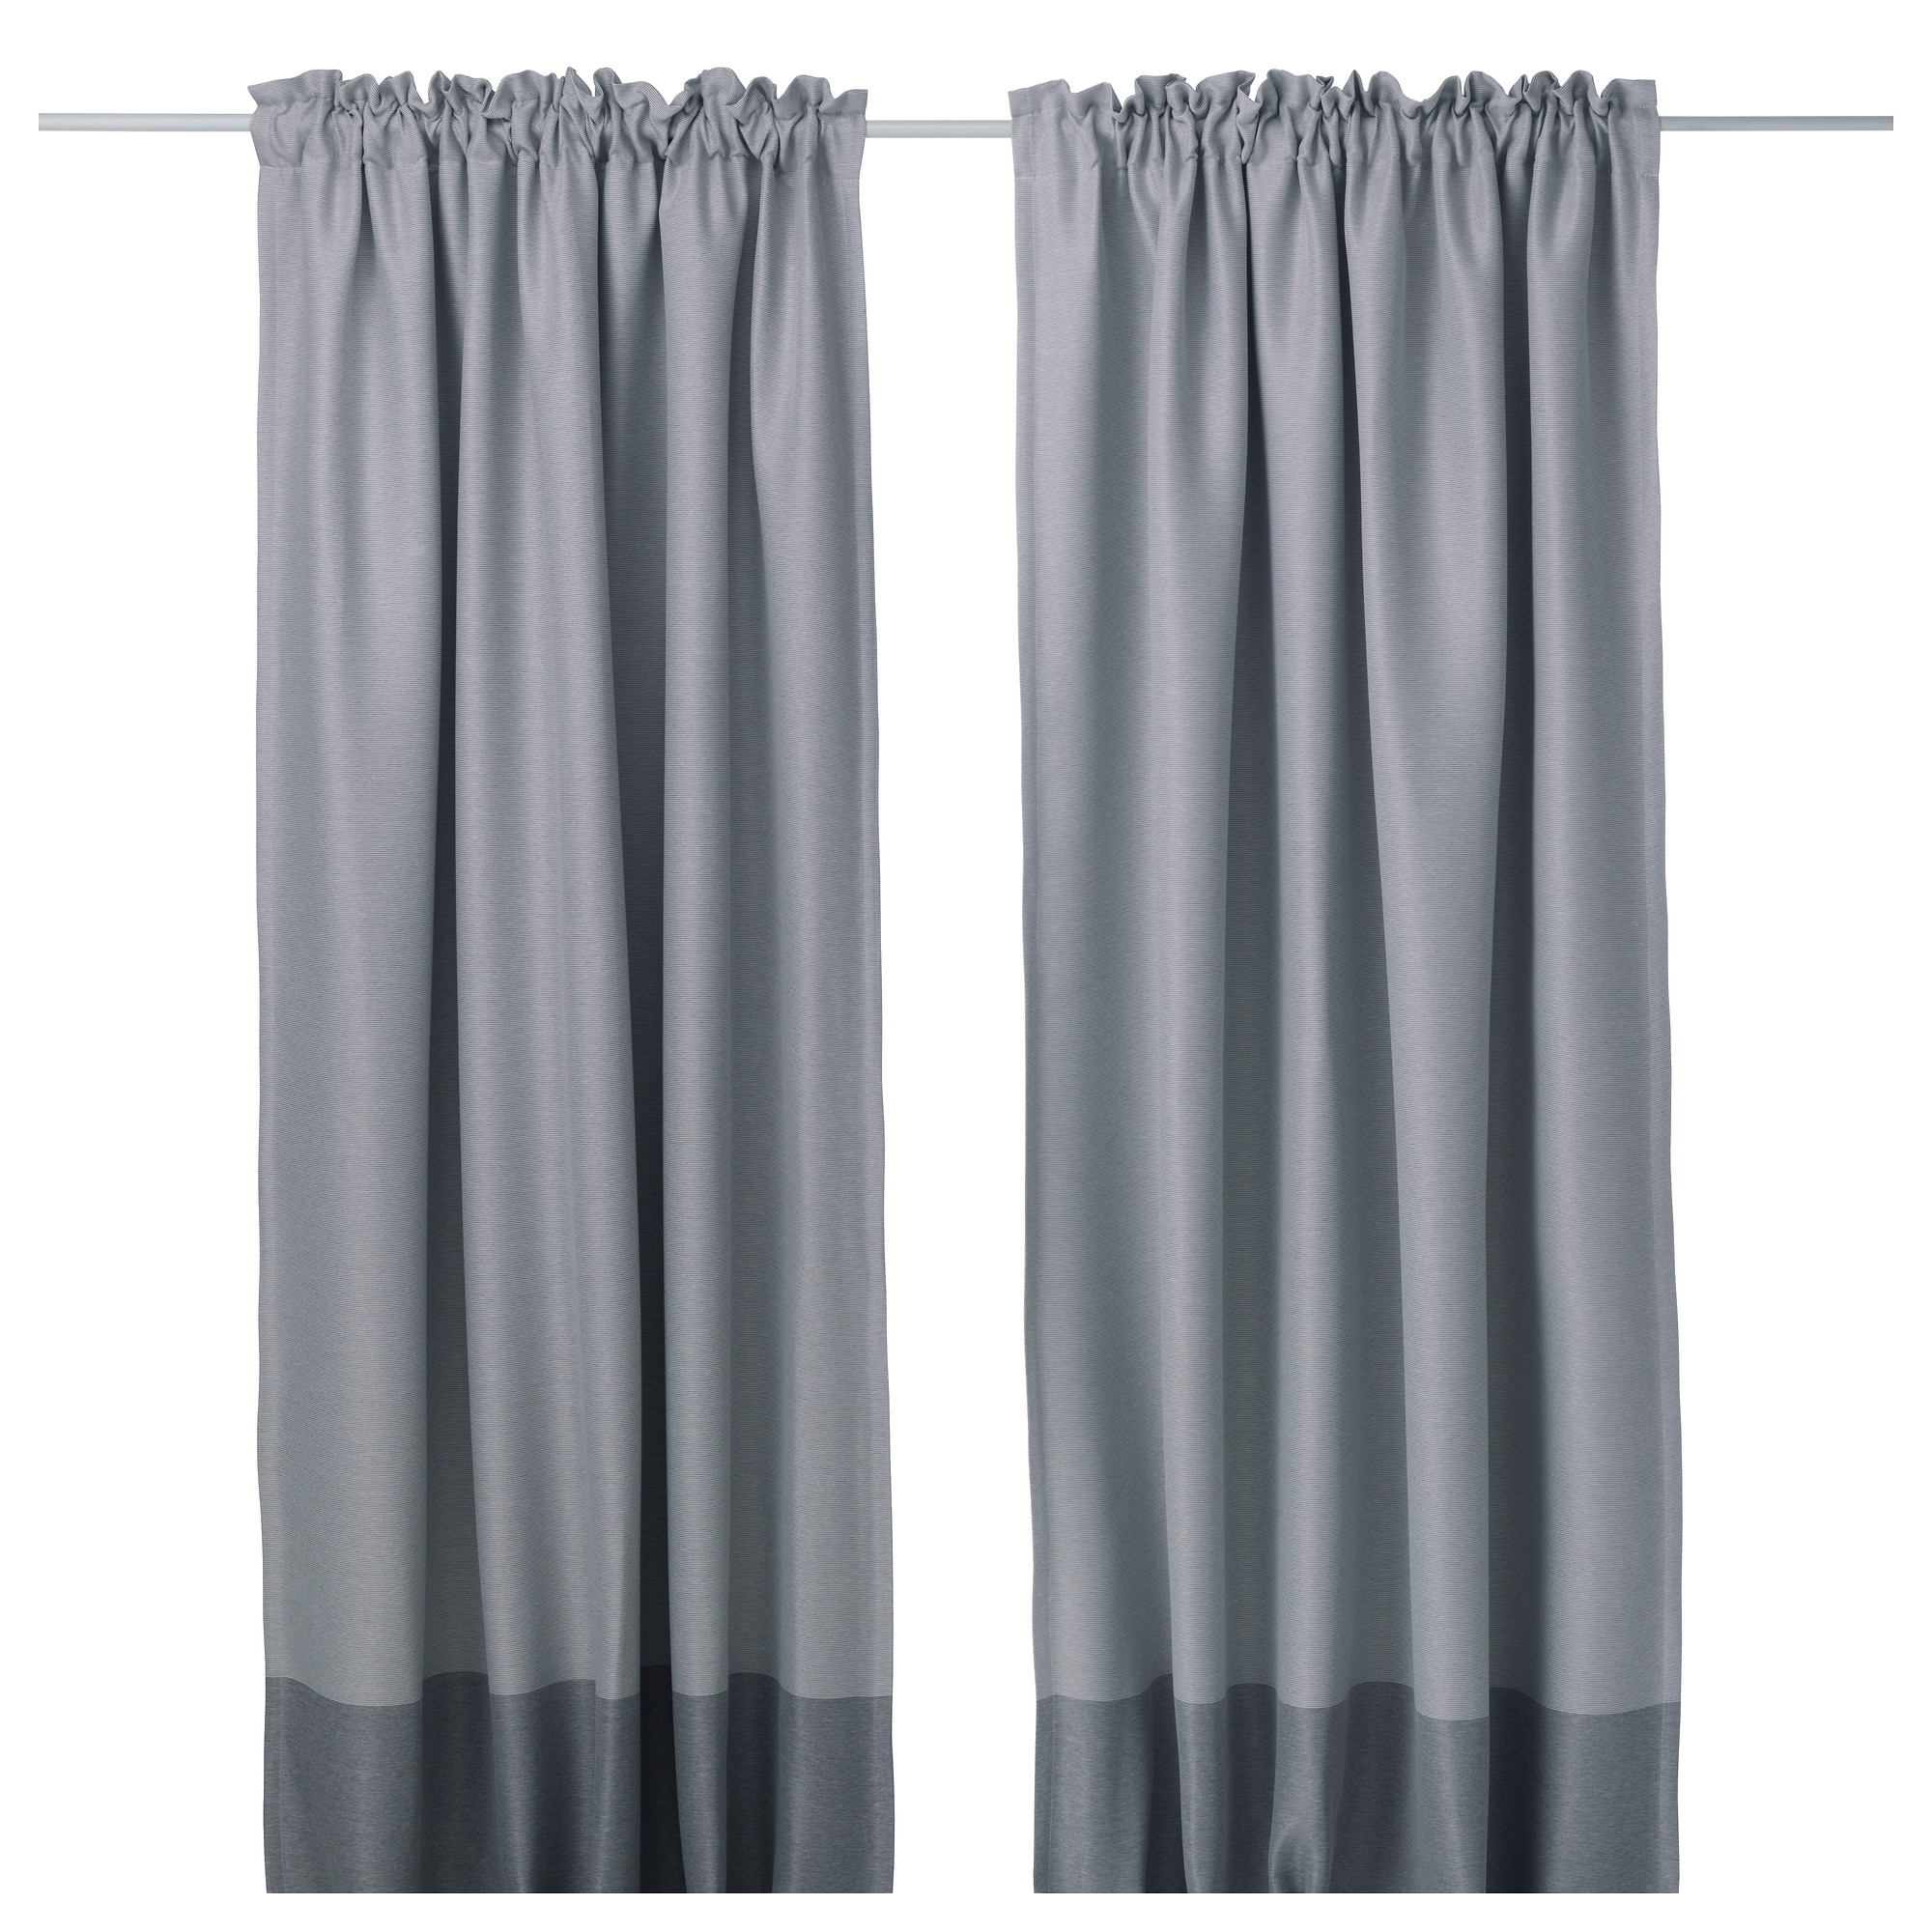 Grey Curtains amp Drapes For Less  Overstock